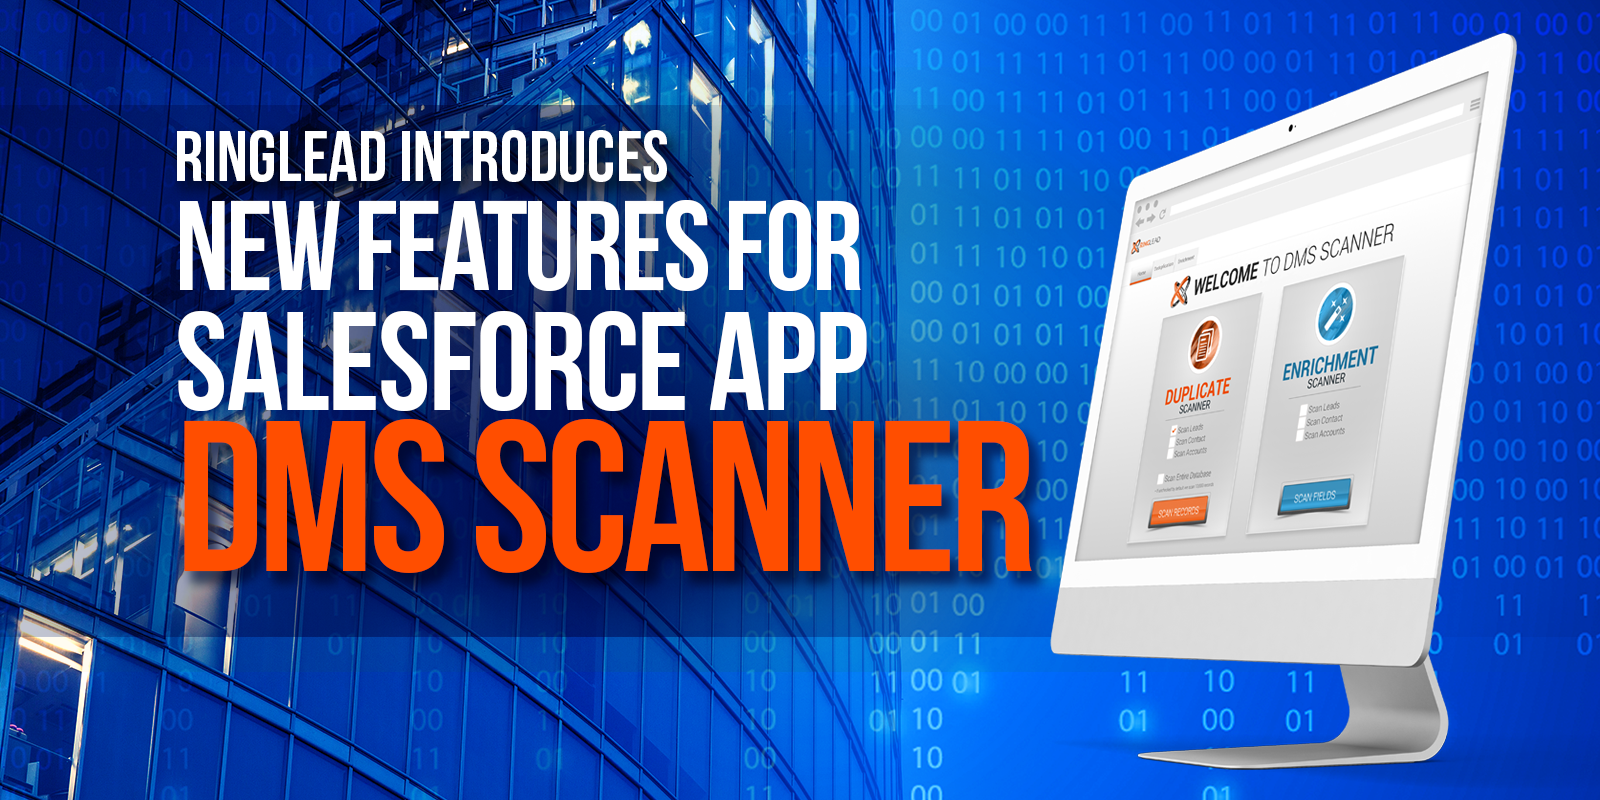 RingLead Introduces New Features For Salesforce App: DMS Scanner